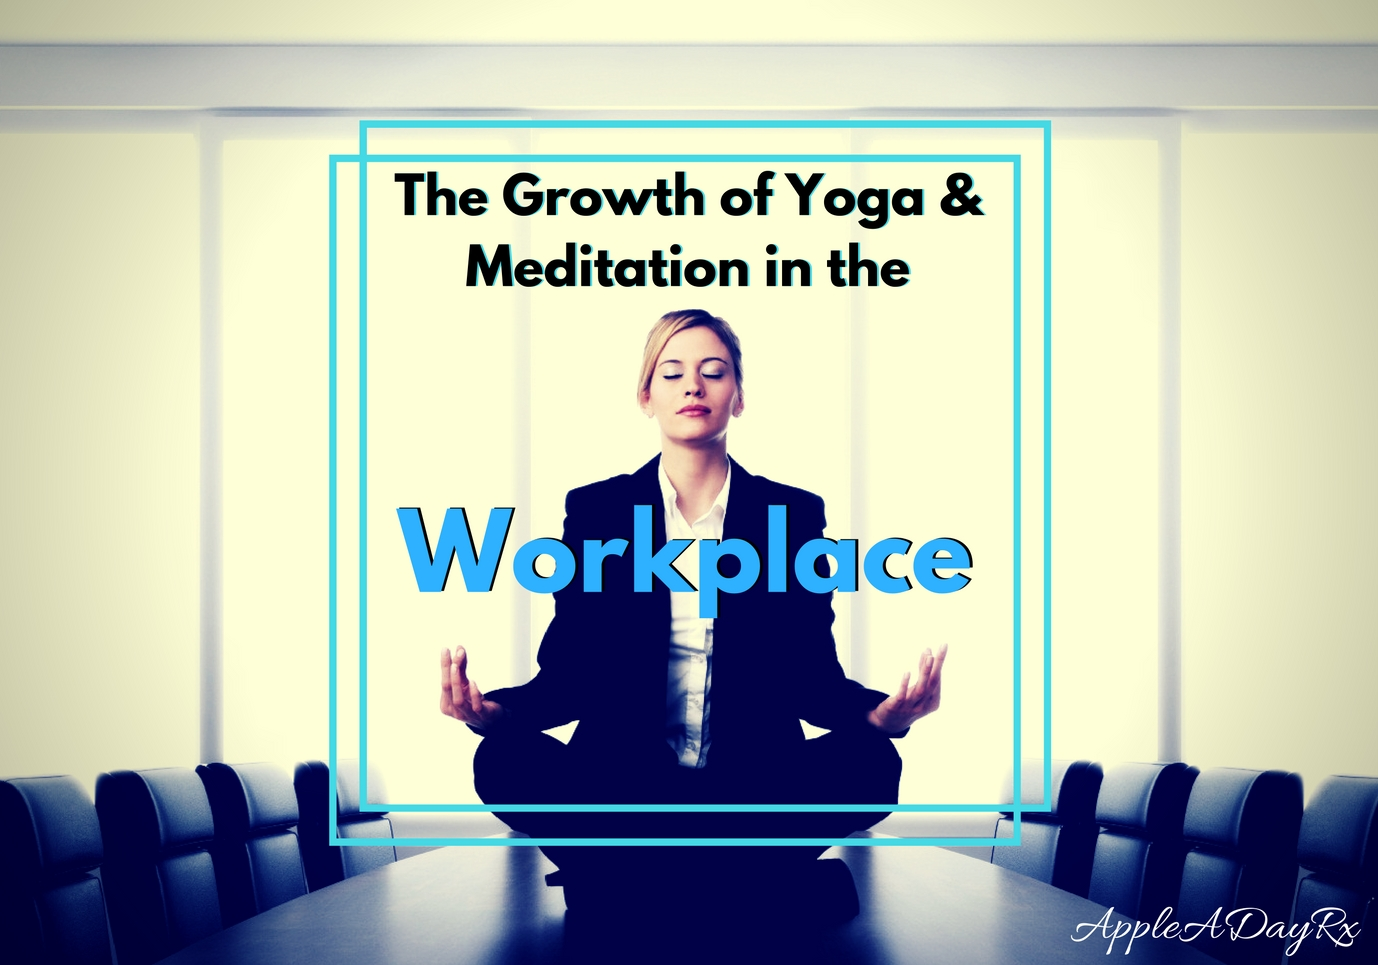 The Growth of Yoga and Meditation in the Workplace